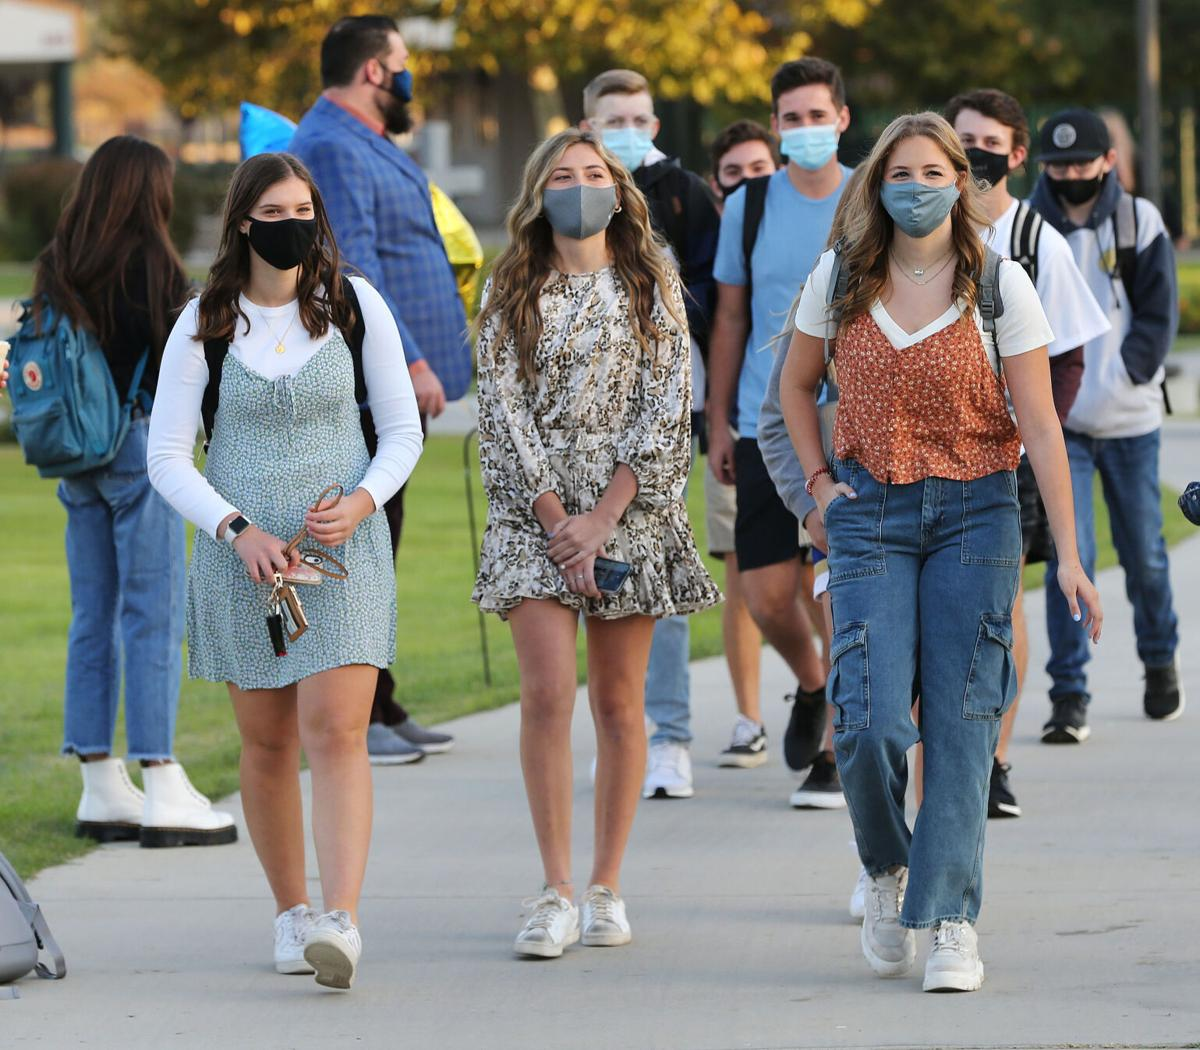 As Cases Rise School Officials Monitor Covid 19 And Bchs Pauses Campus Life News Bakersfield Com